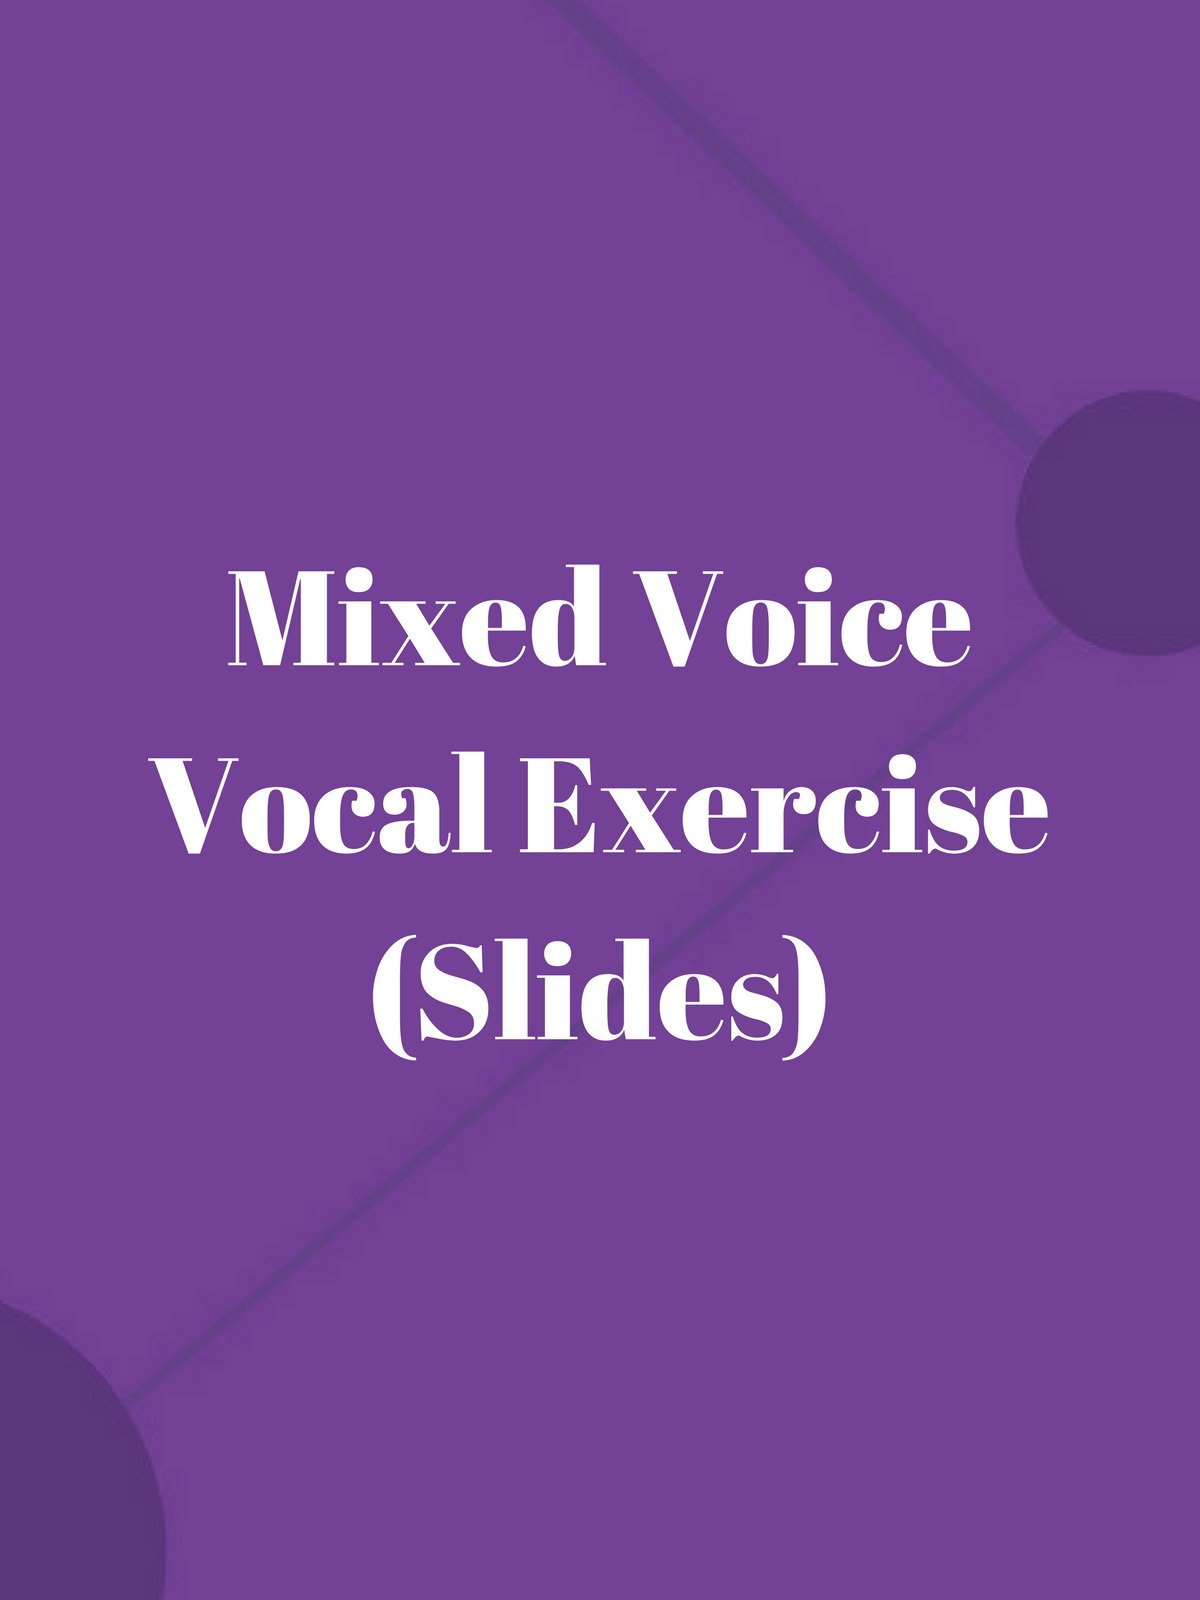 Mixed Voice Vocal Exercise (Slides)